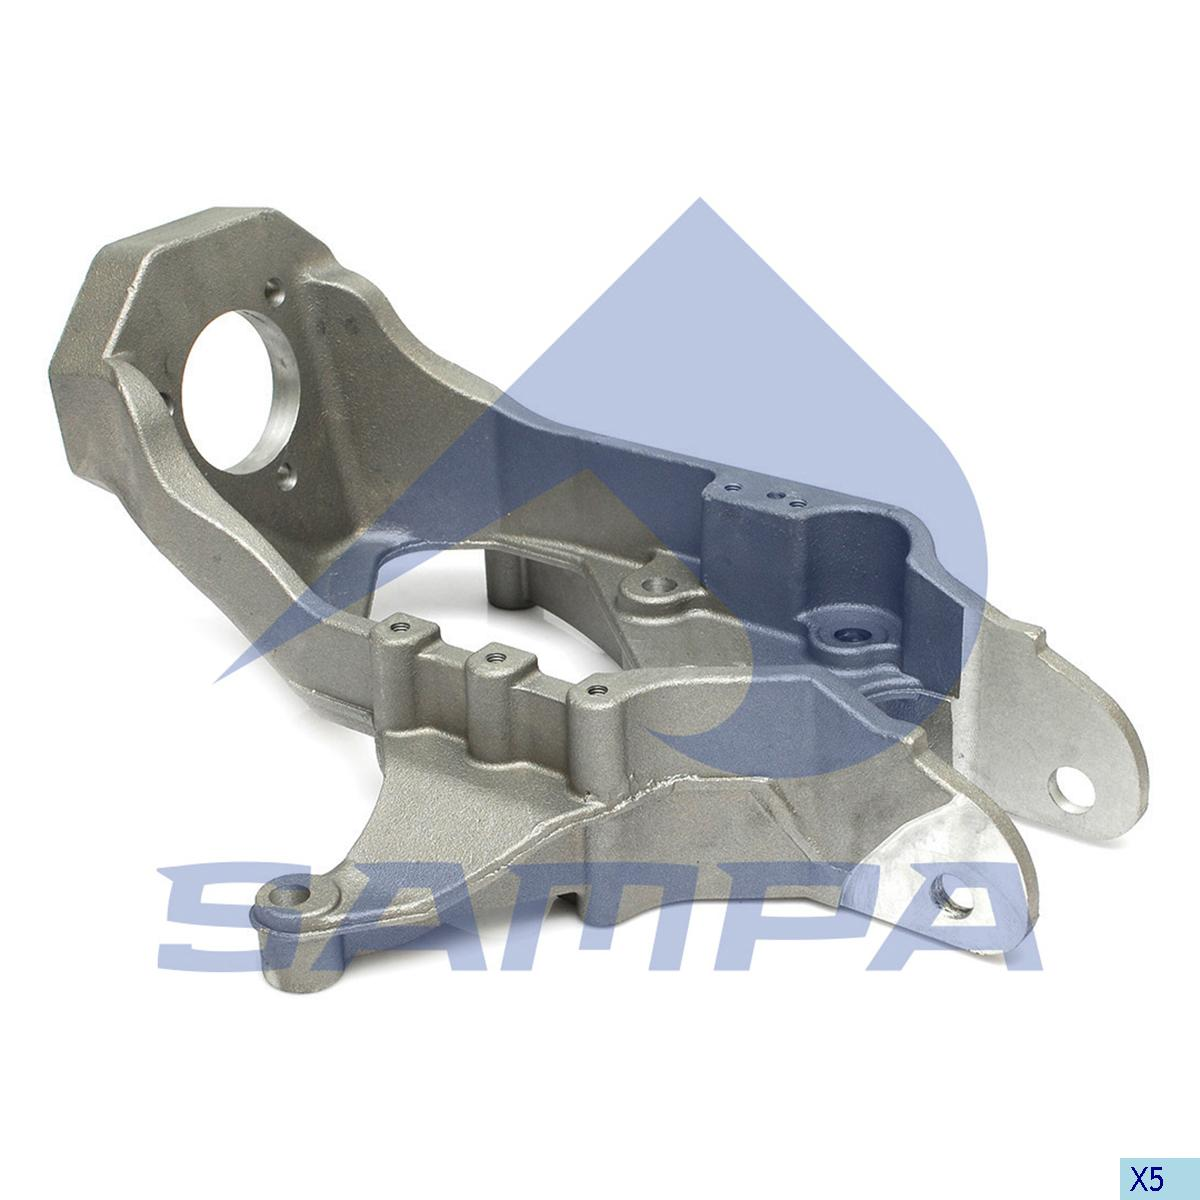 Bracket, Cab, Scania, Cab